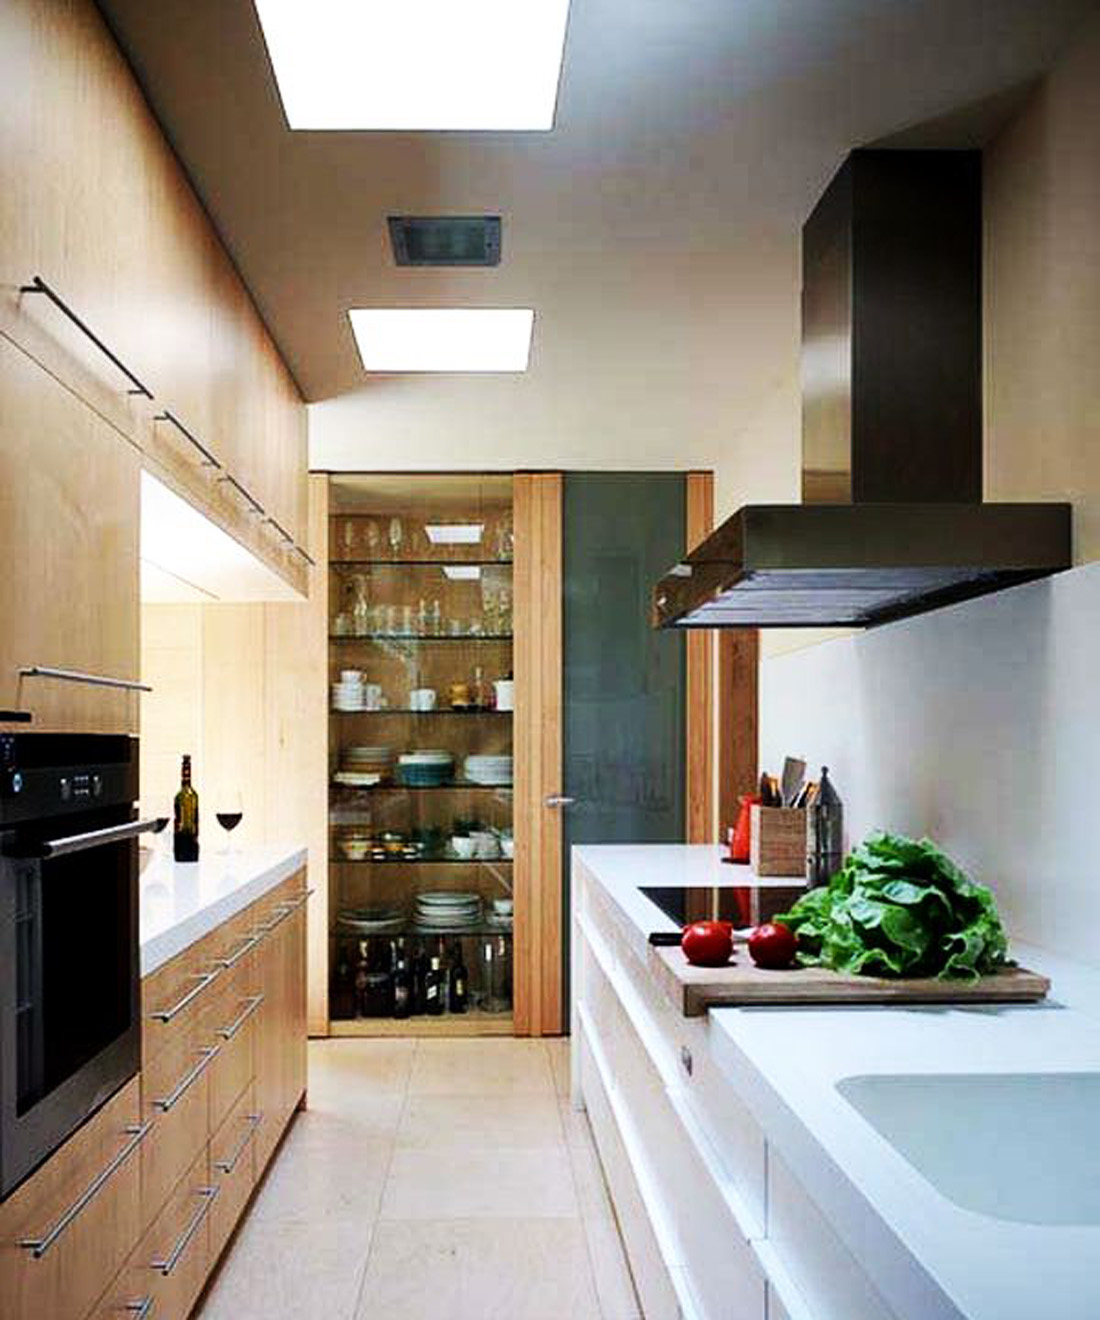 25 modern small kitchen design ideas Small space design ideas